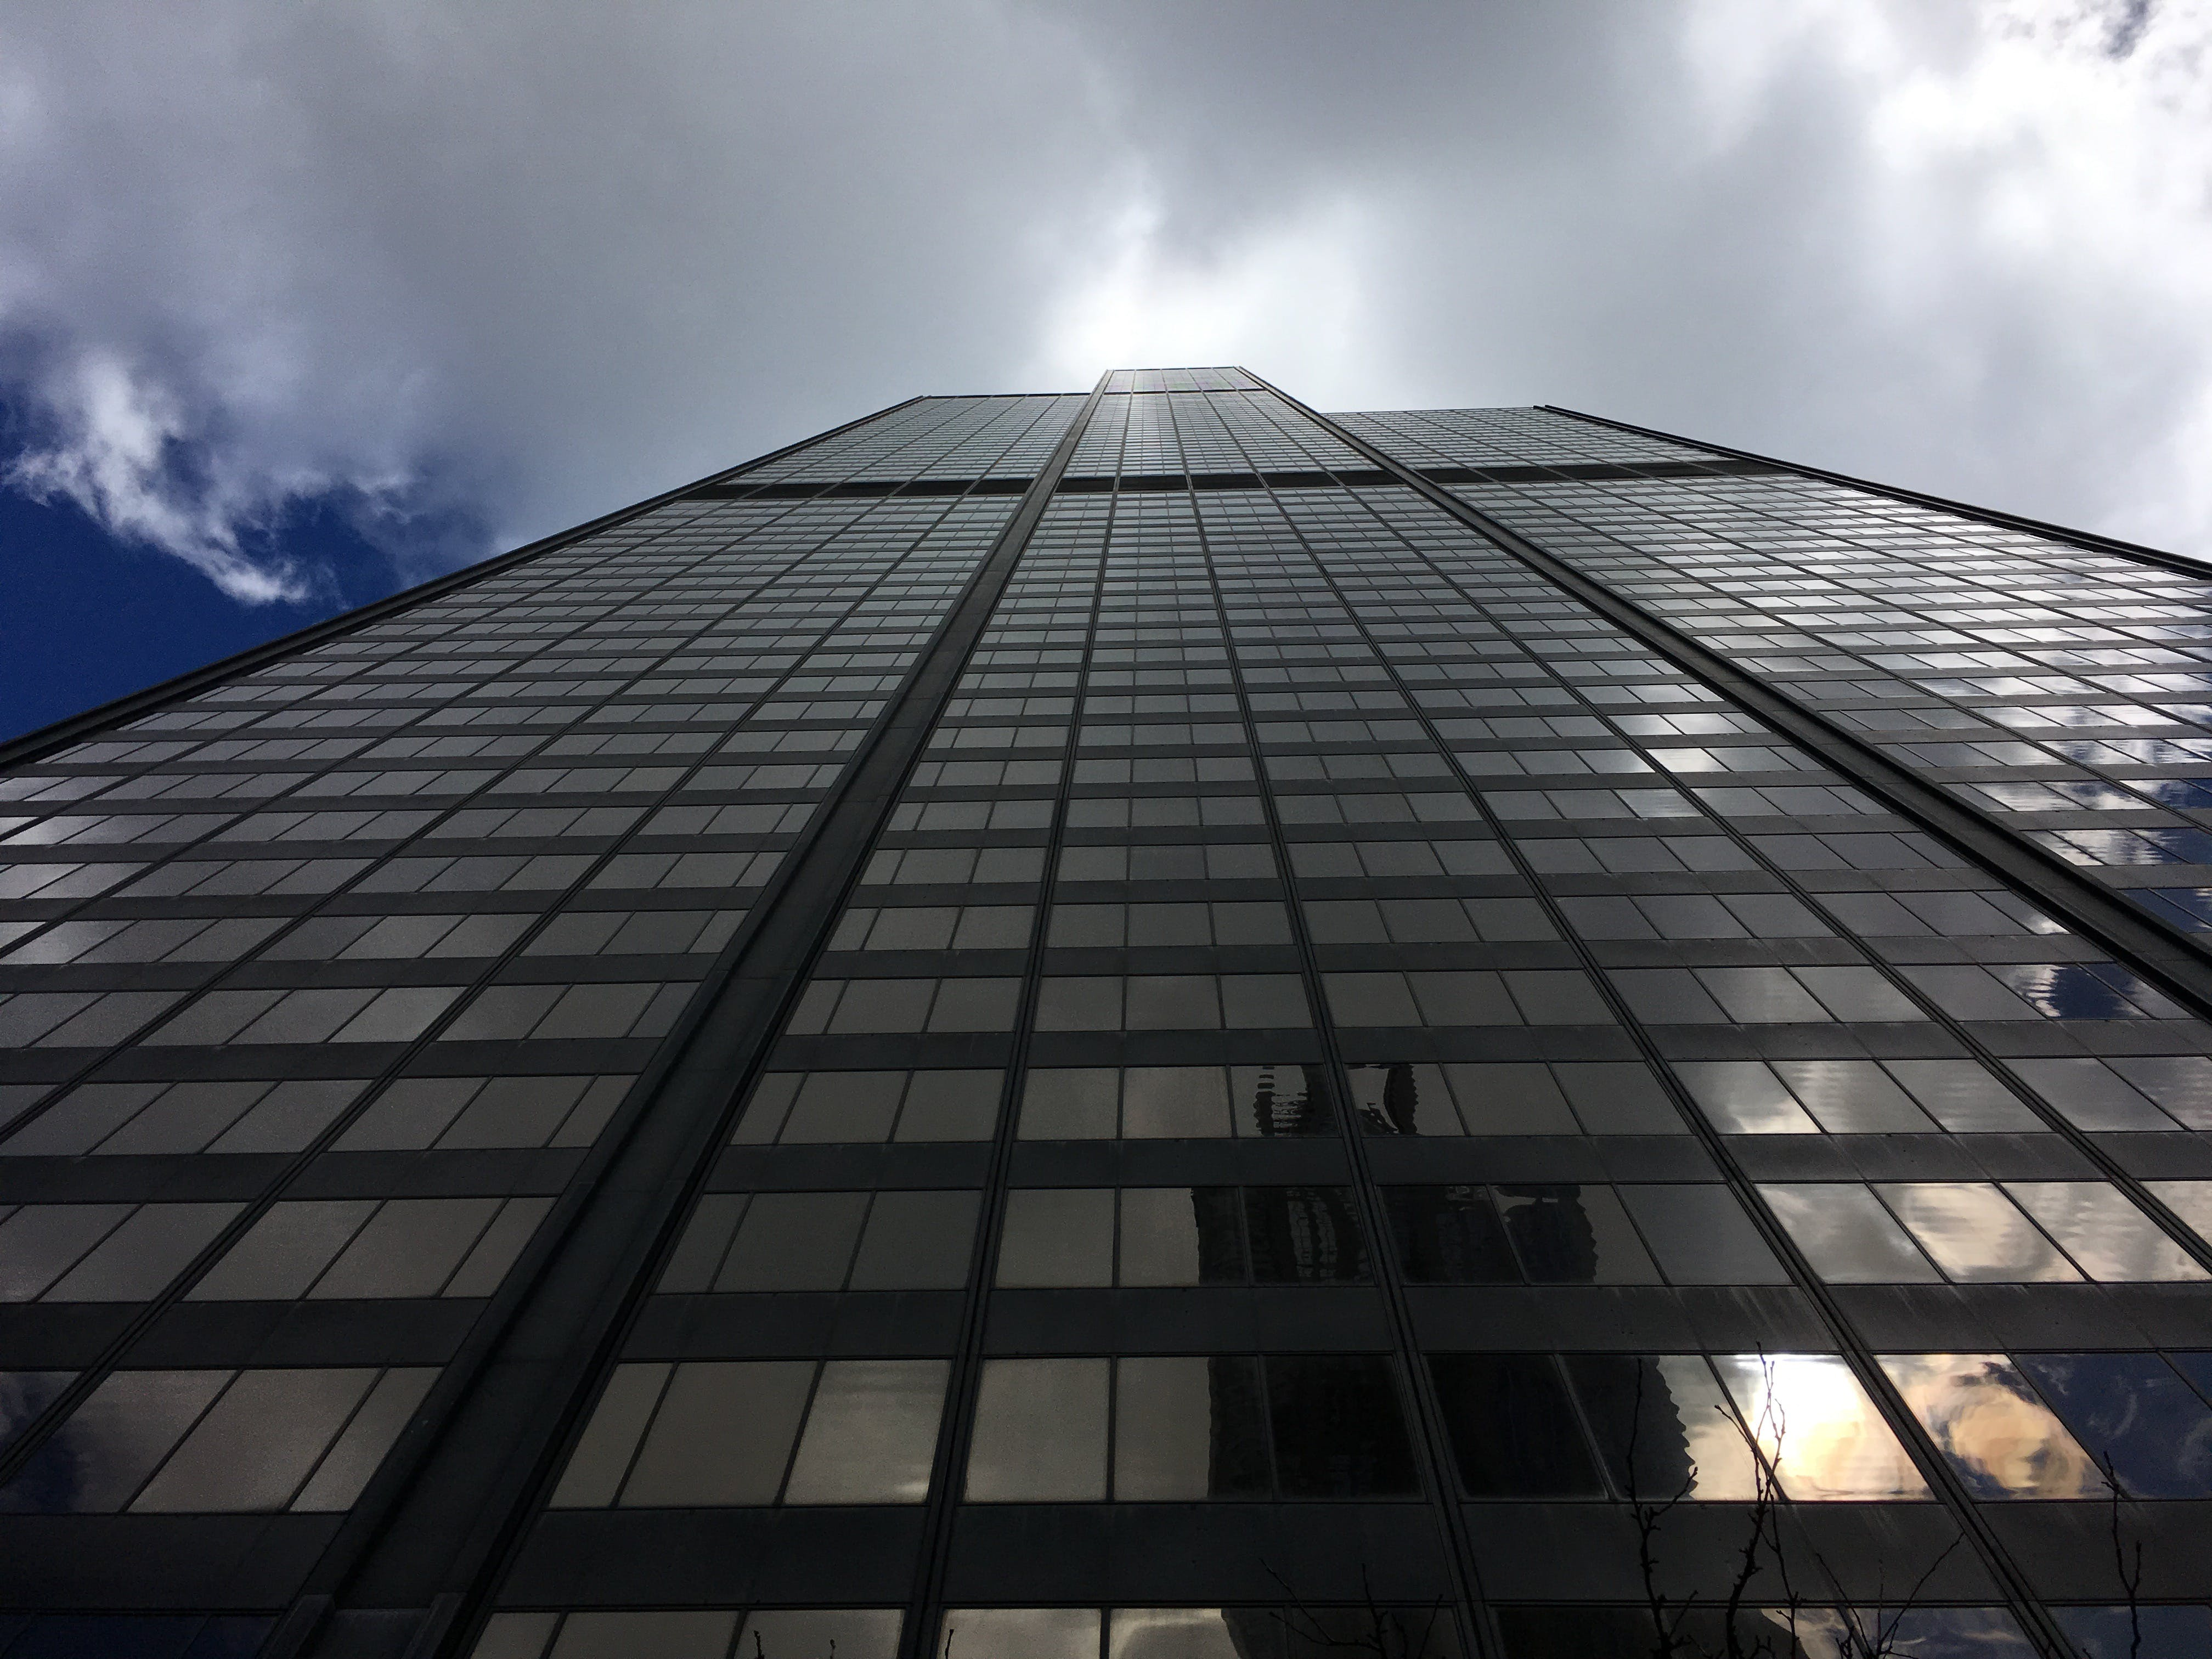 Low Angle Photography of High Rise Building at Daytime